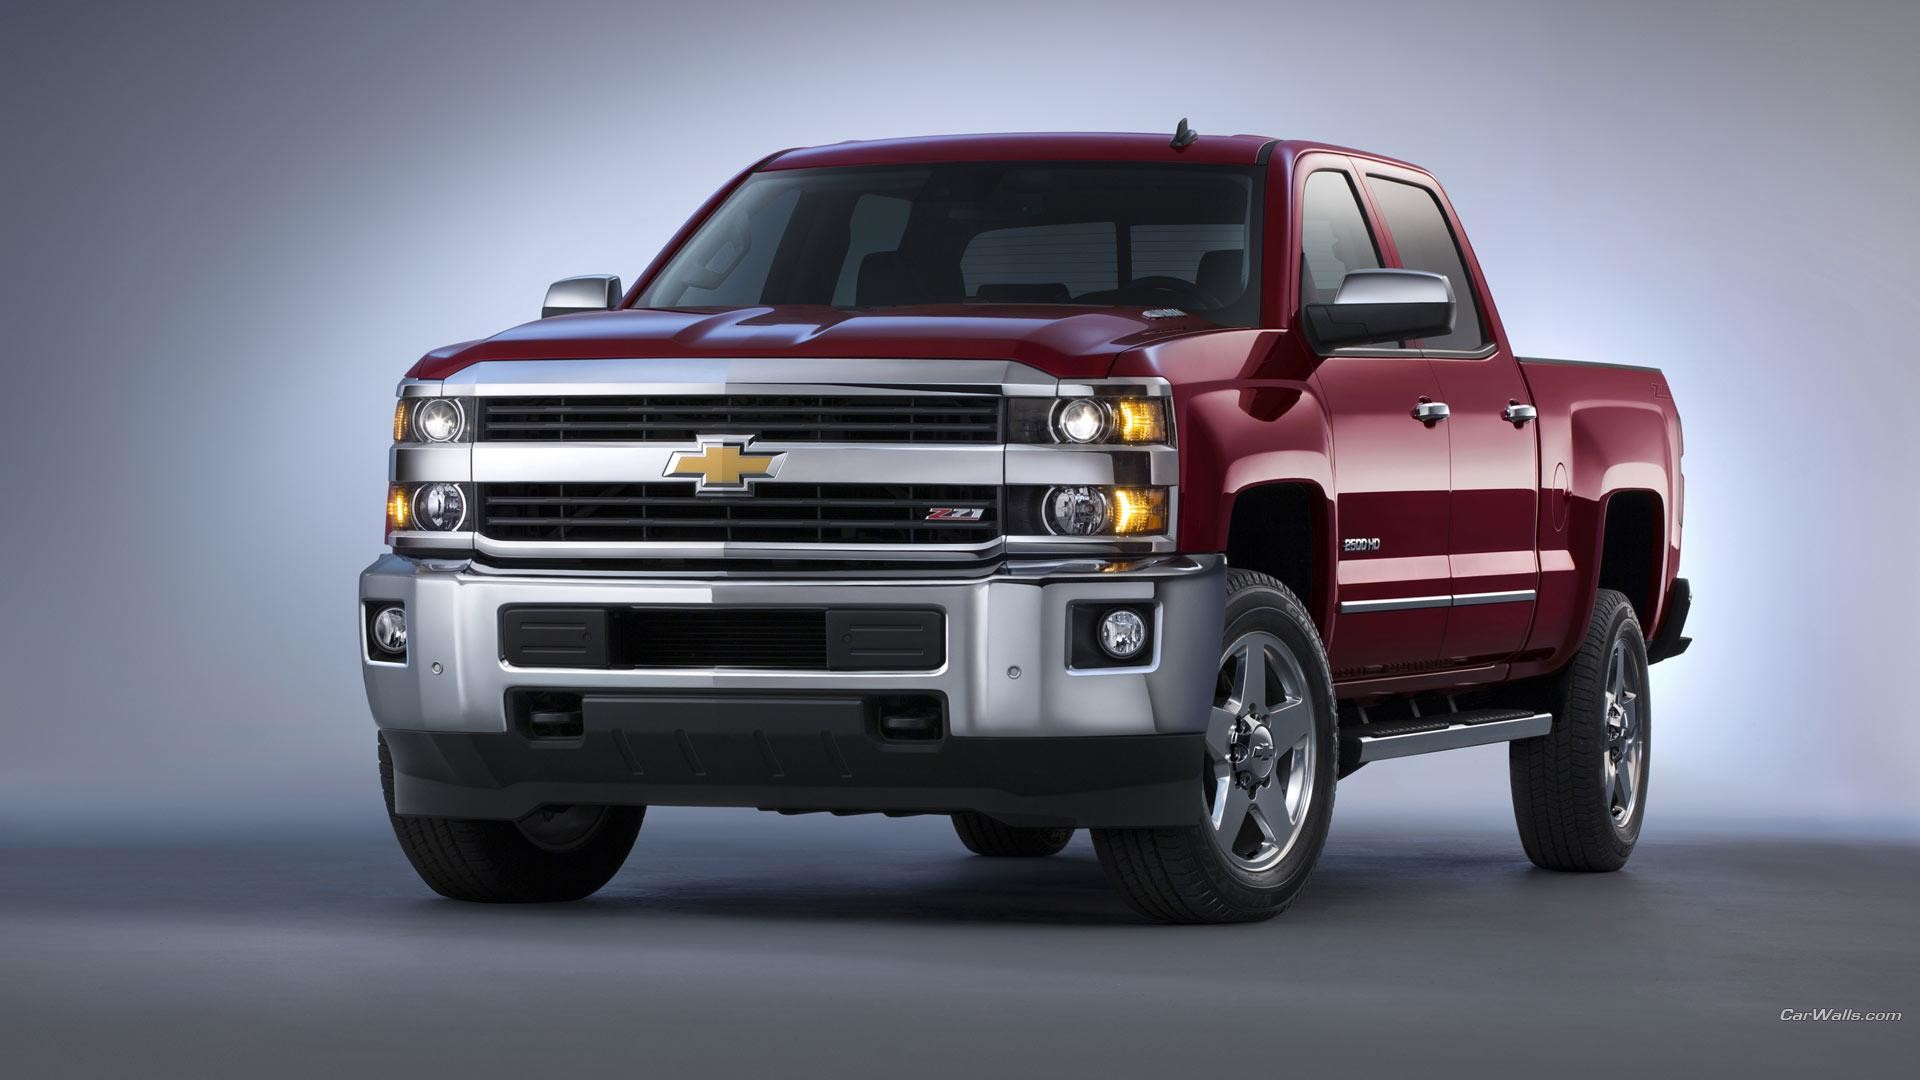 2015 Chevrolet Silverado HD wallpapers for android